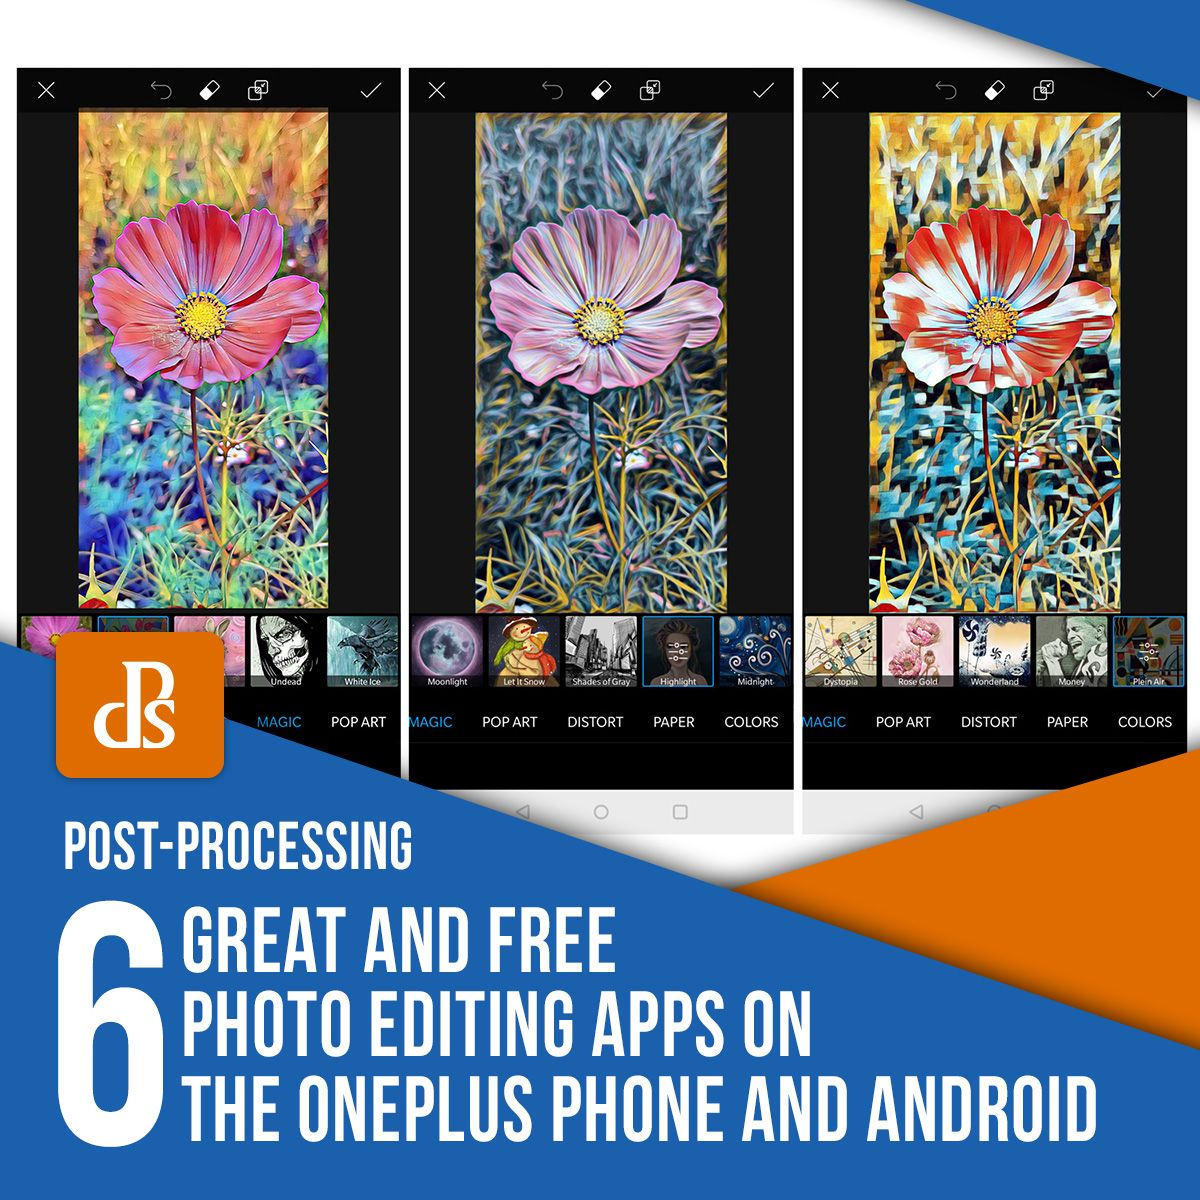 6 Great and Free Photo Editing Apps on the OnePlus Phone